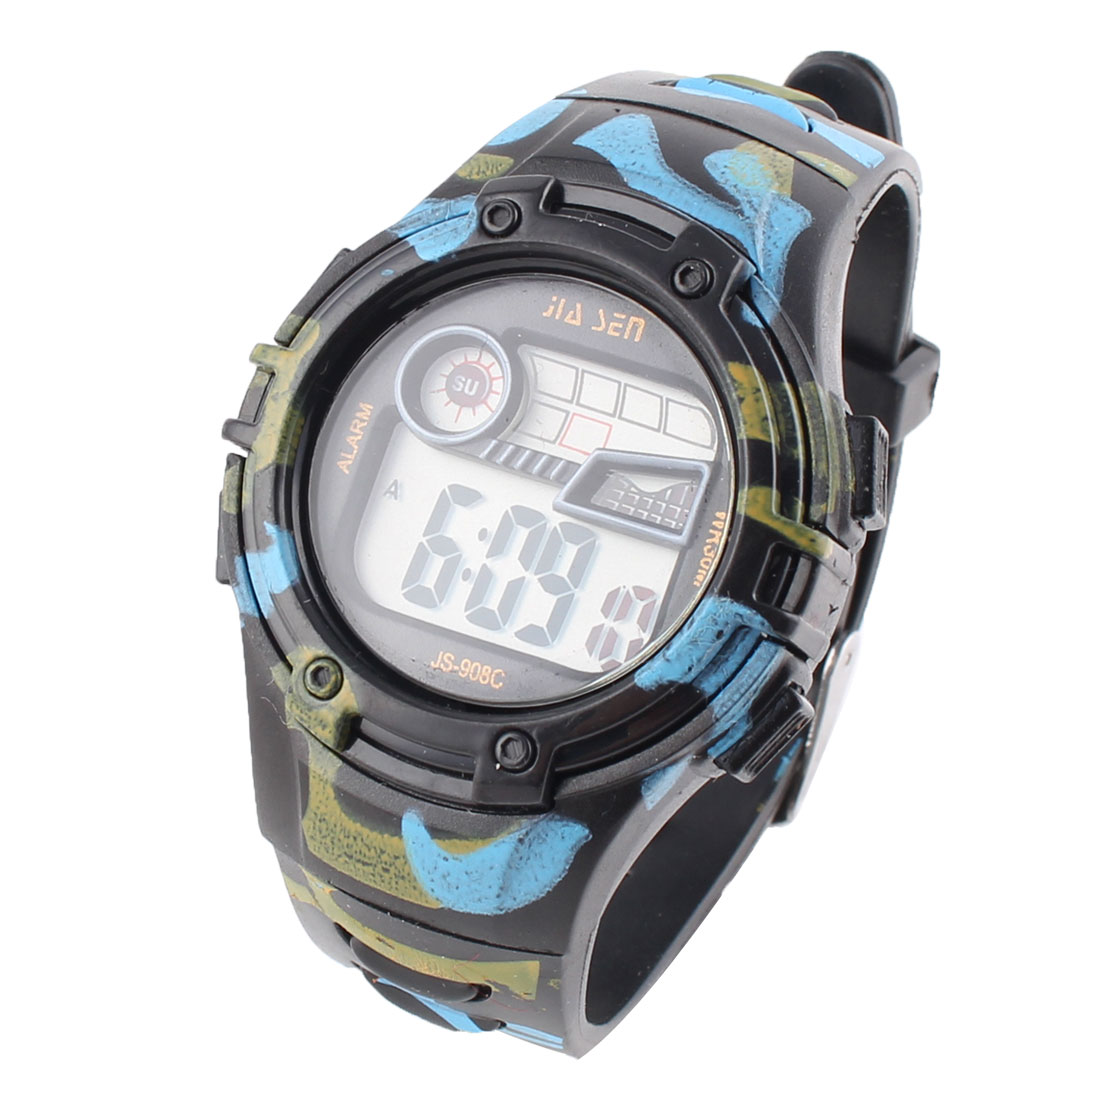 Plastic Water Resistant Digital LED Backlight LCD Screen Sports Alarm Watch